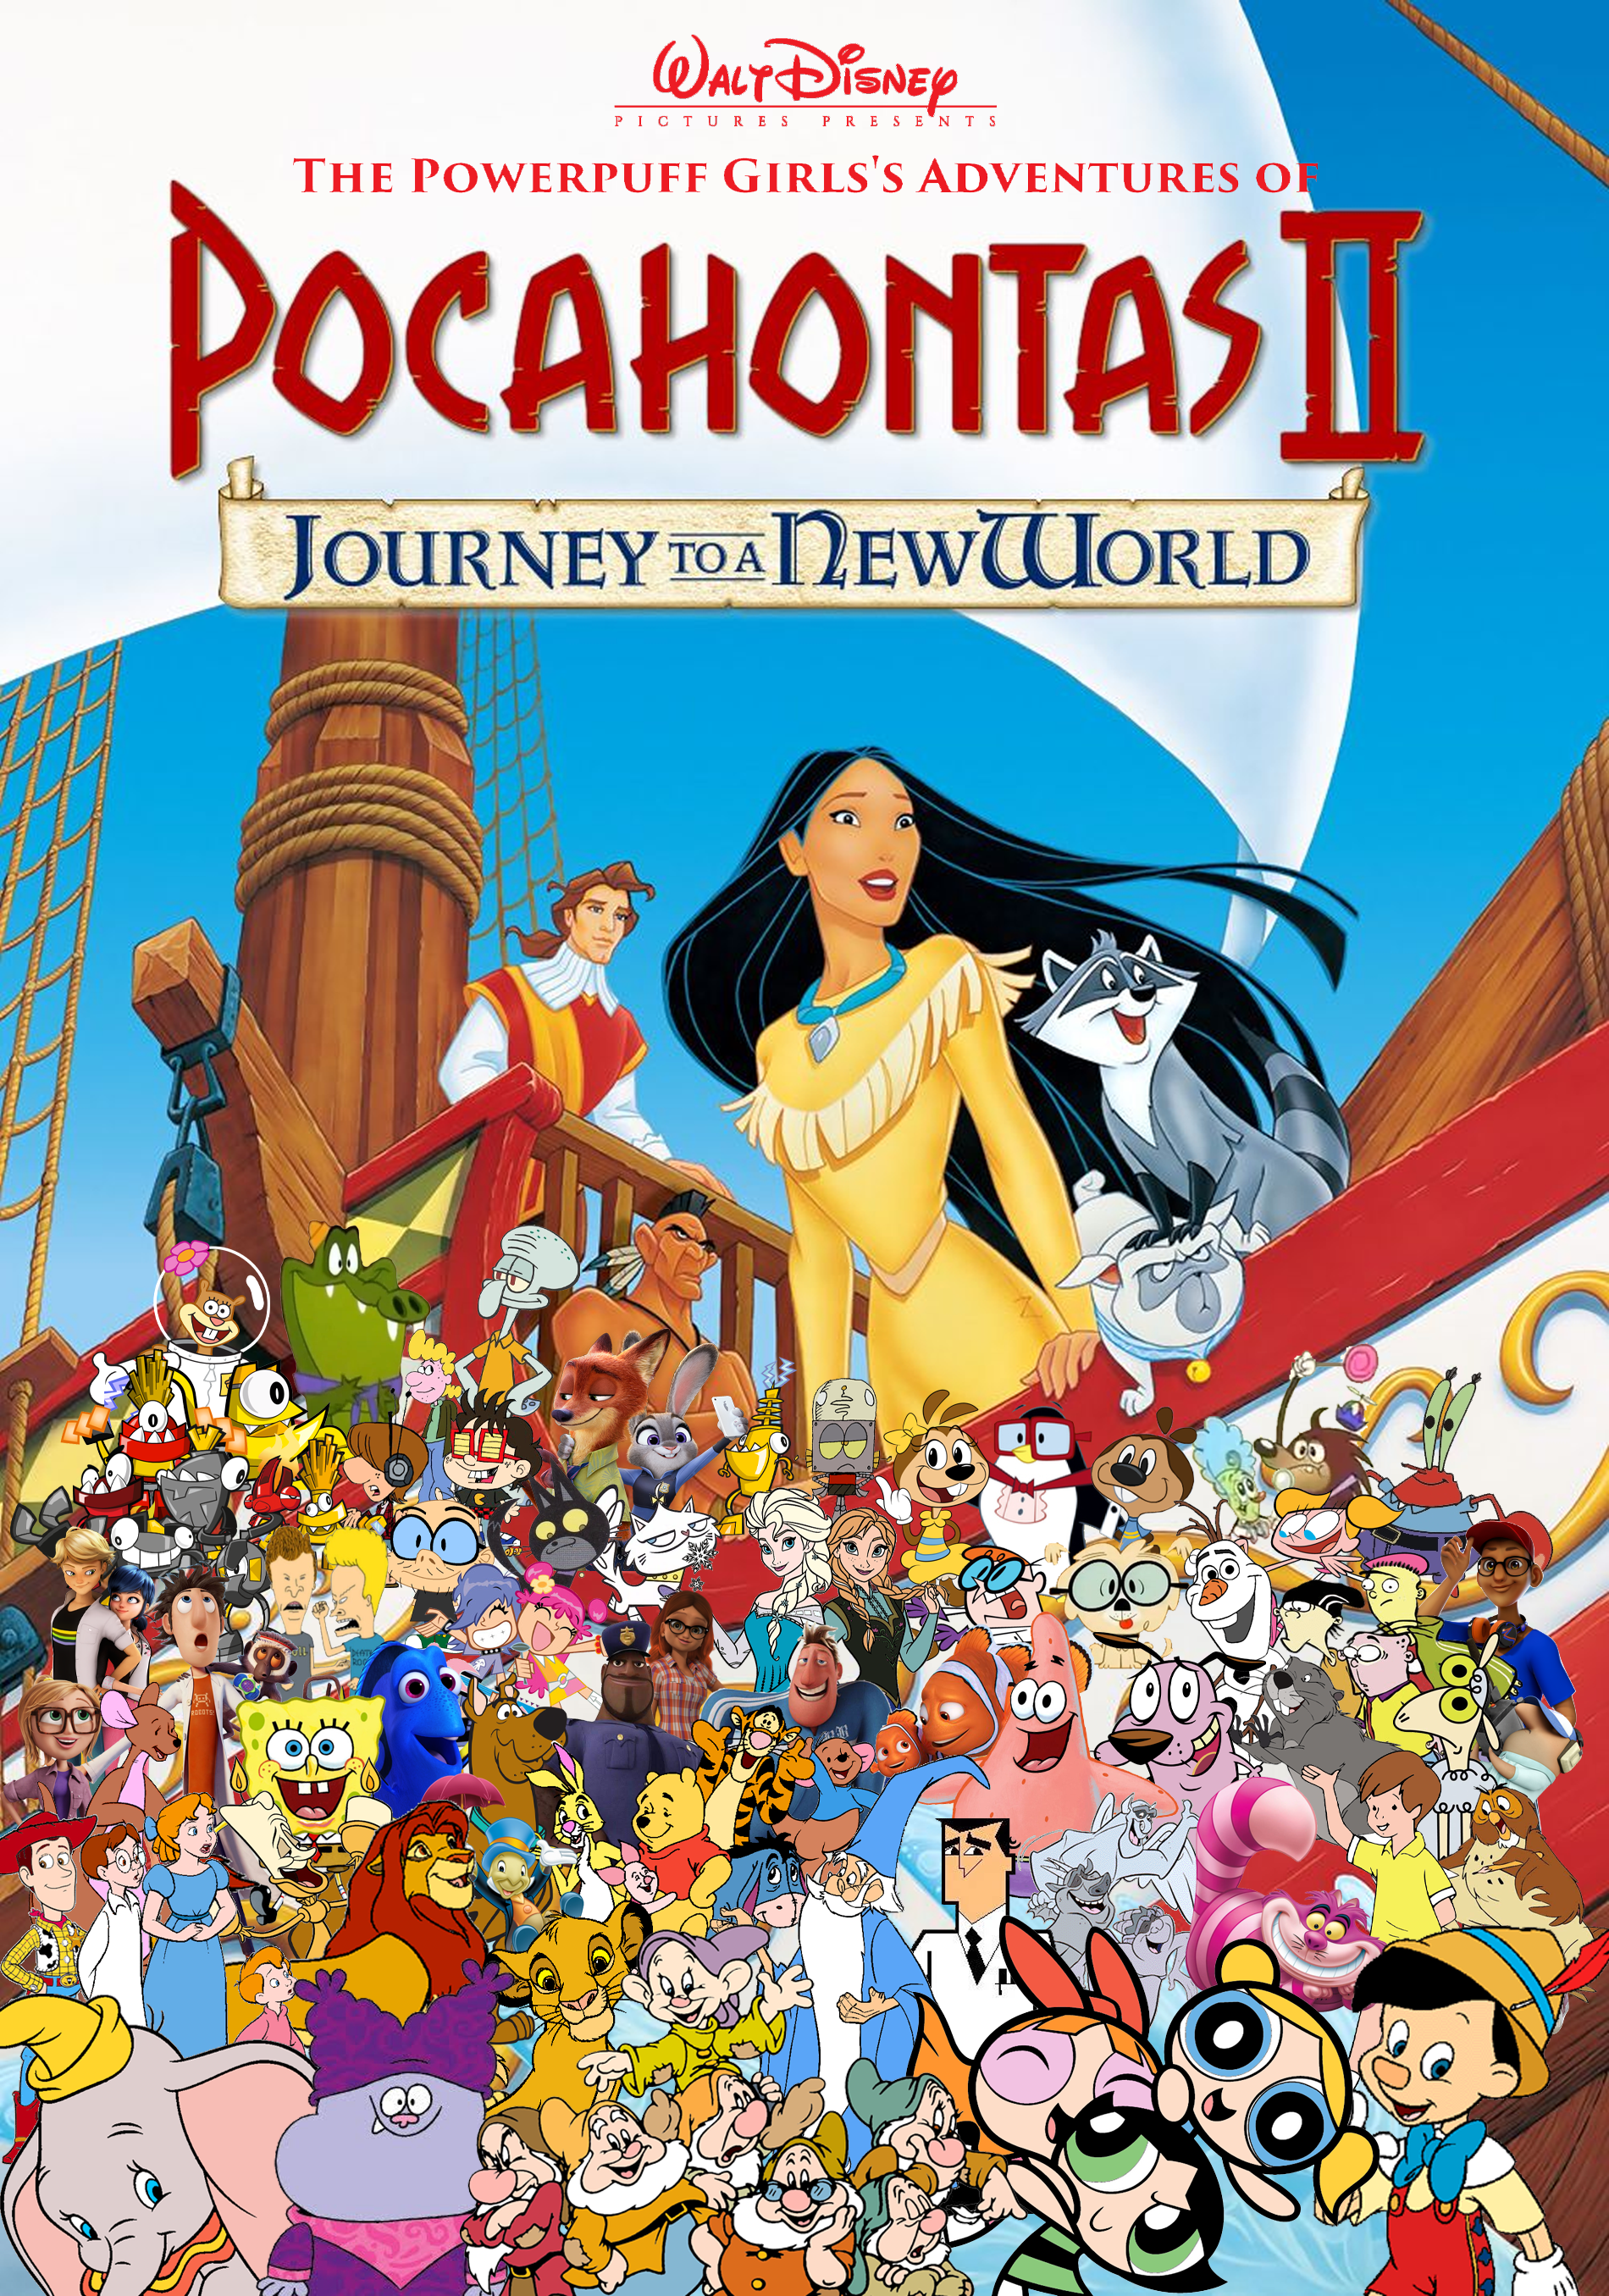 The Powerpuff Girls' Adventures of Pocahontas 2: Journey to a New World